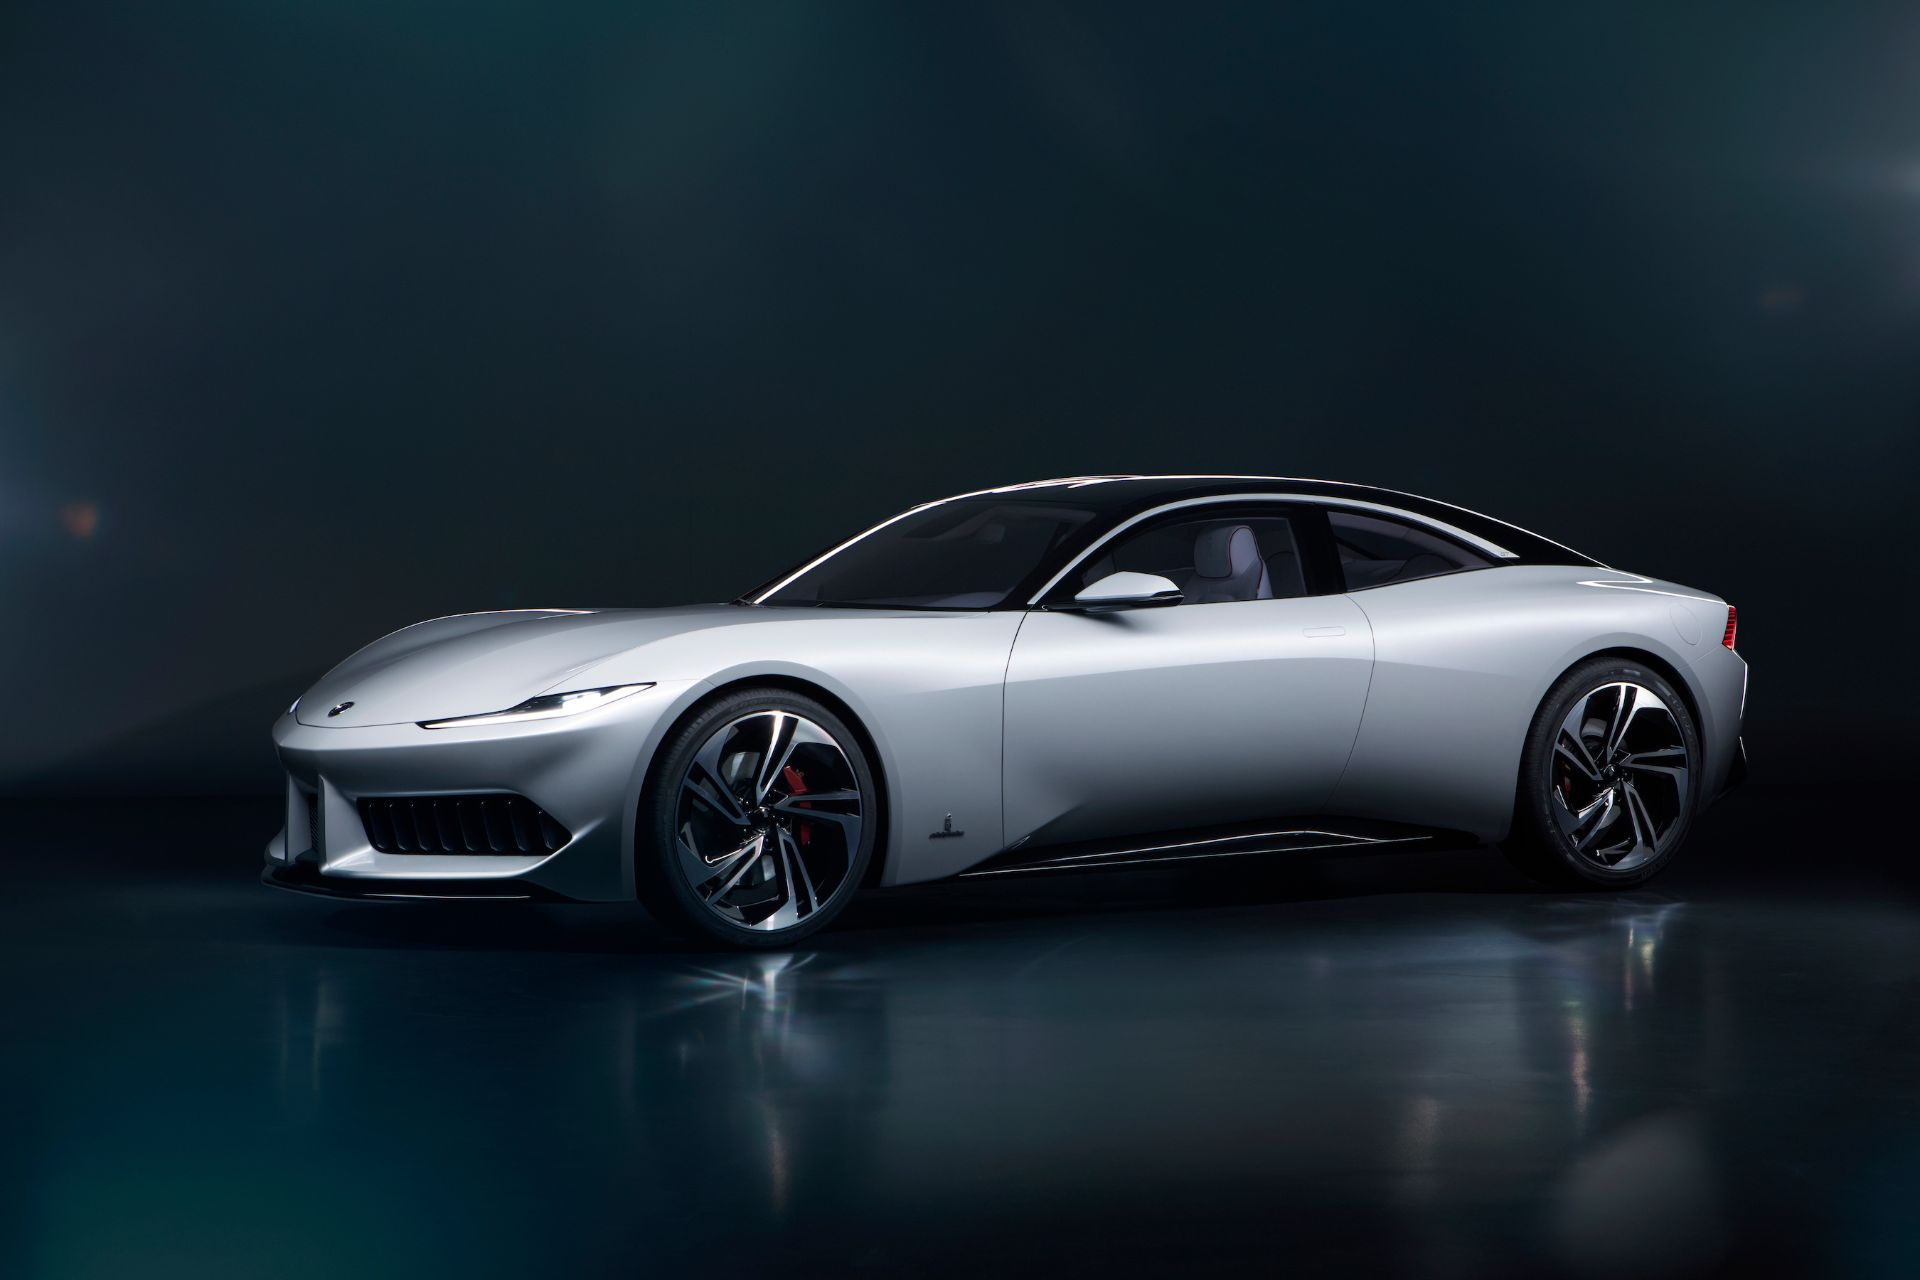 Karma looks to the future with Pininfarina GT and Vision concepts 1920x1280